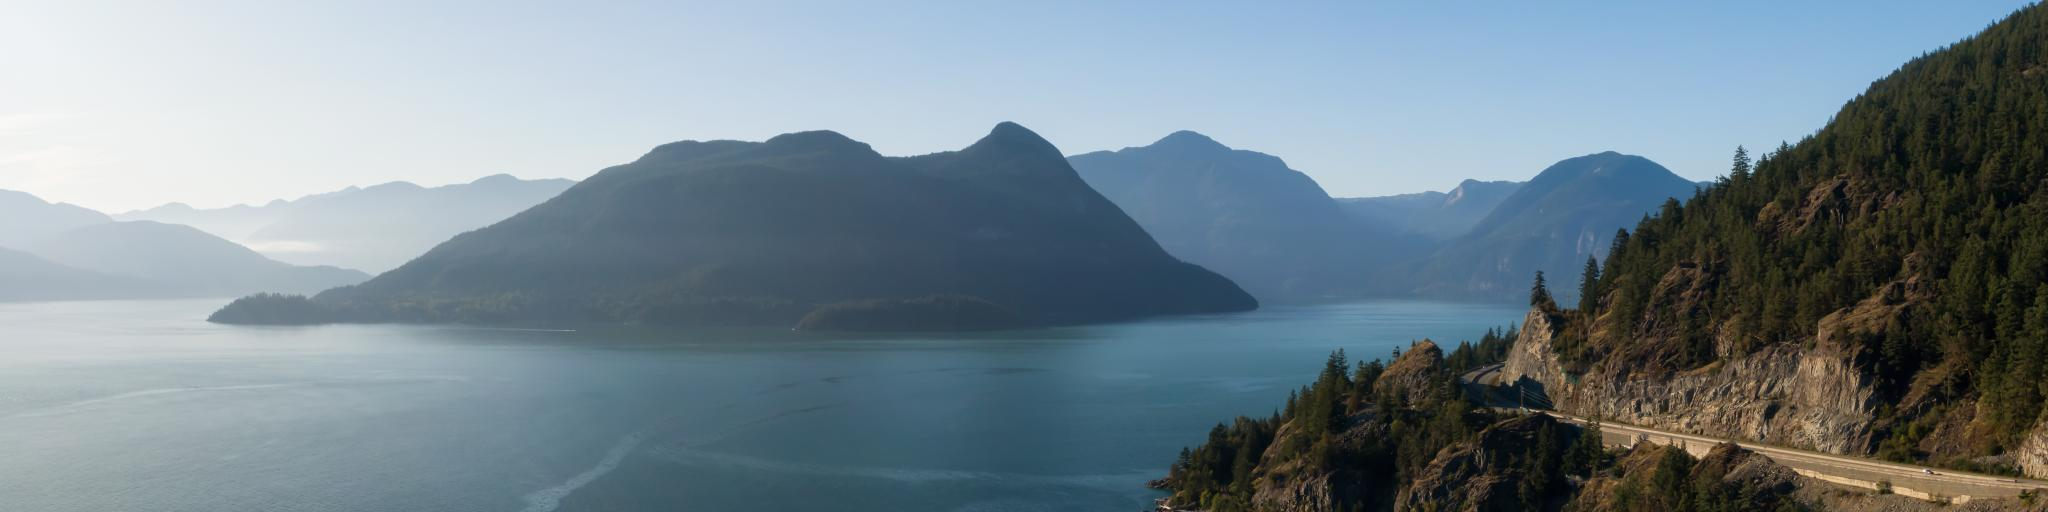 Sea to Sky Highway in Howe Sound, north of Vancouver - one of the most scenic roads to drive across Canada